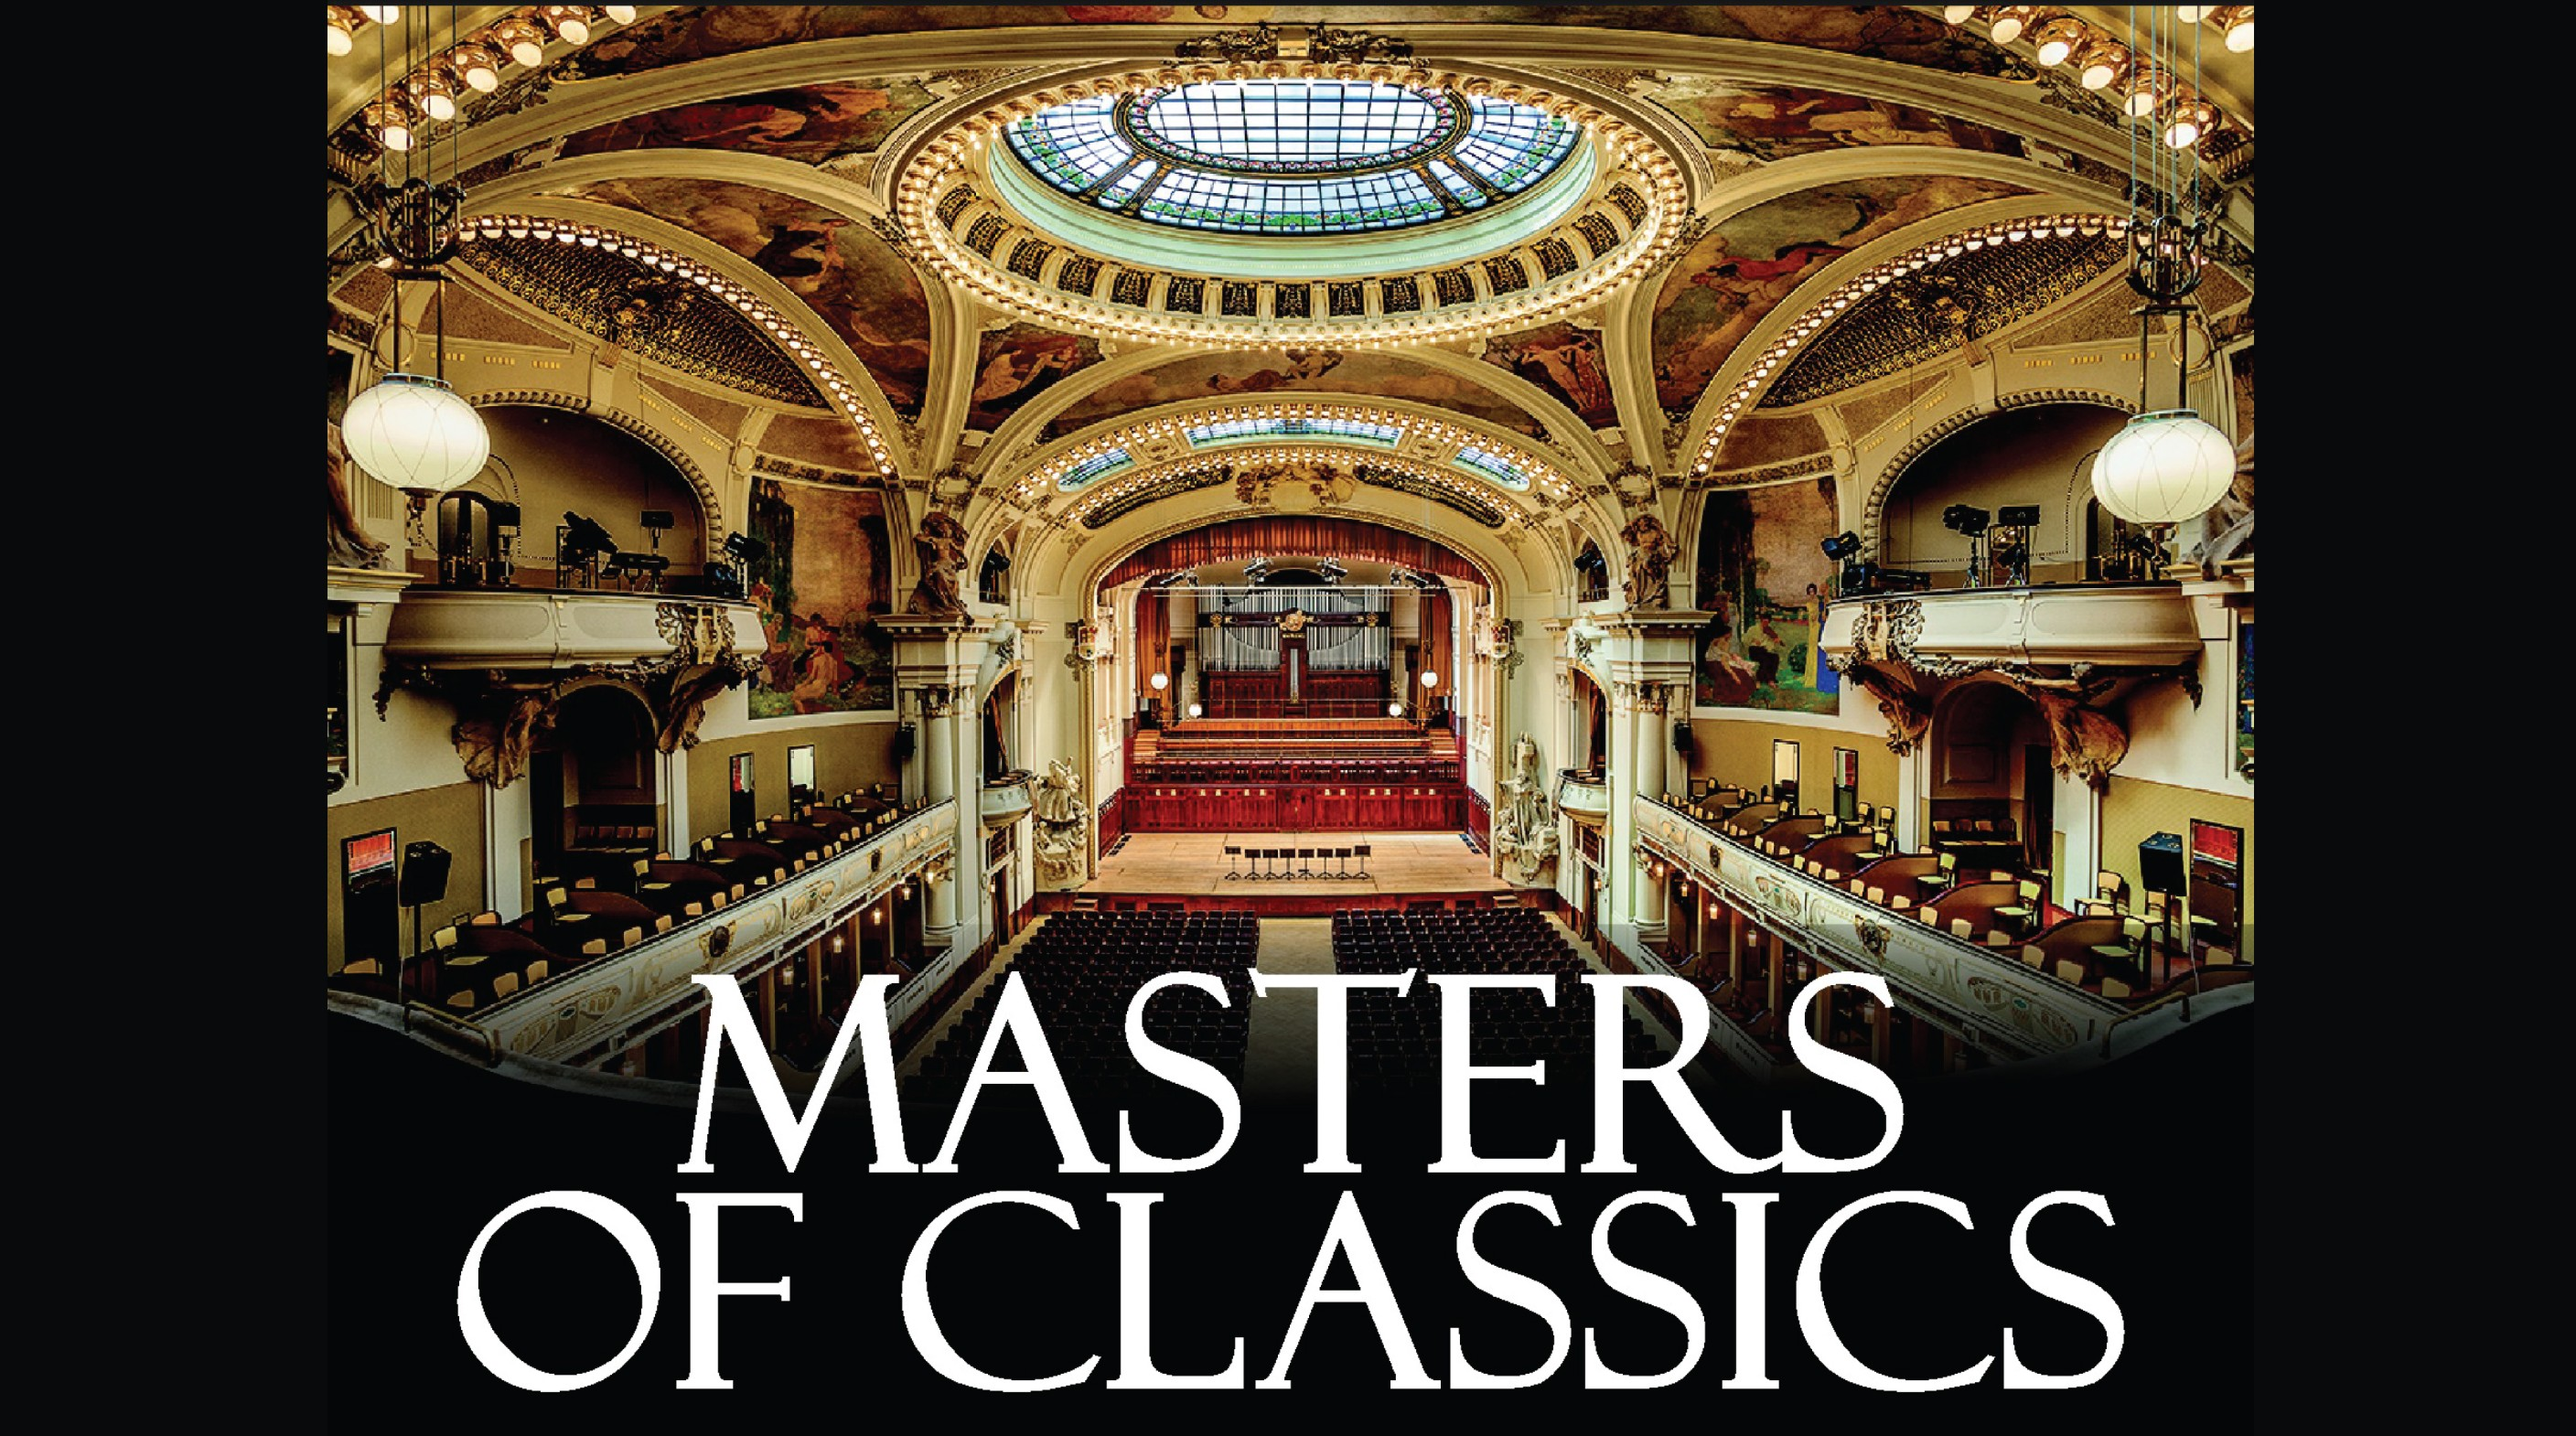 MASTERS OF CLASSICS IN THE MUNICIPAL HOUSE 03.03.2020